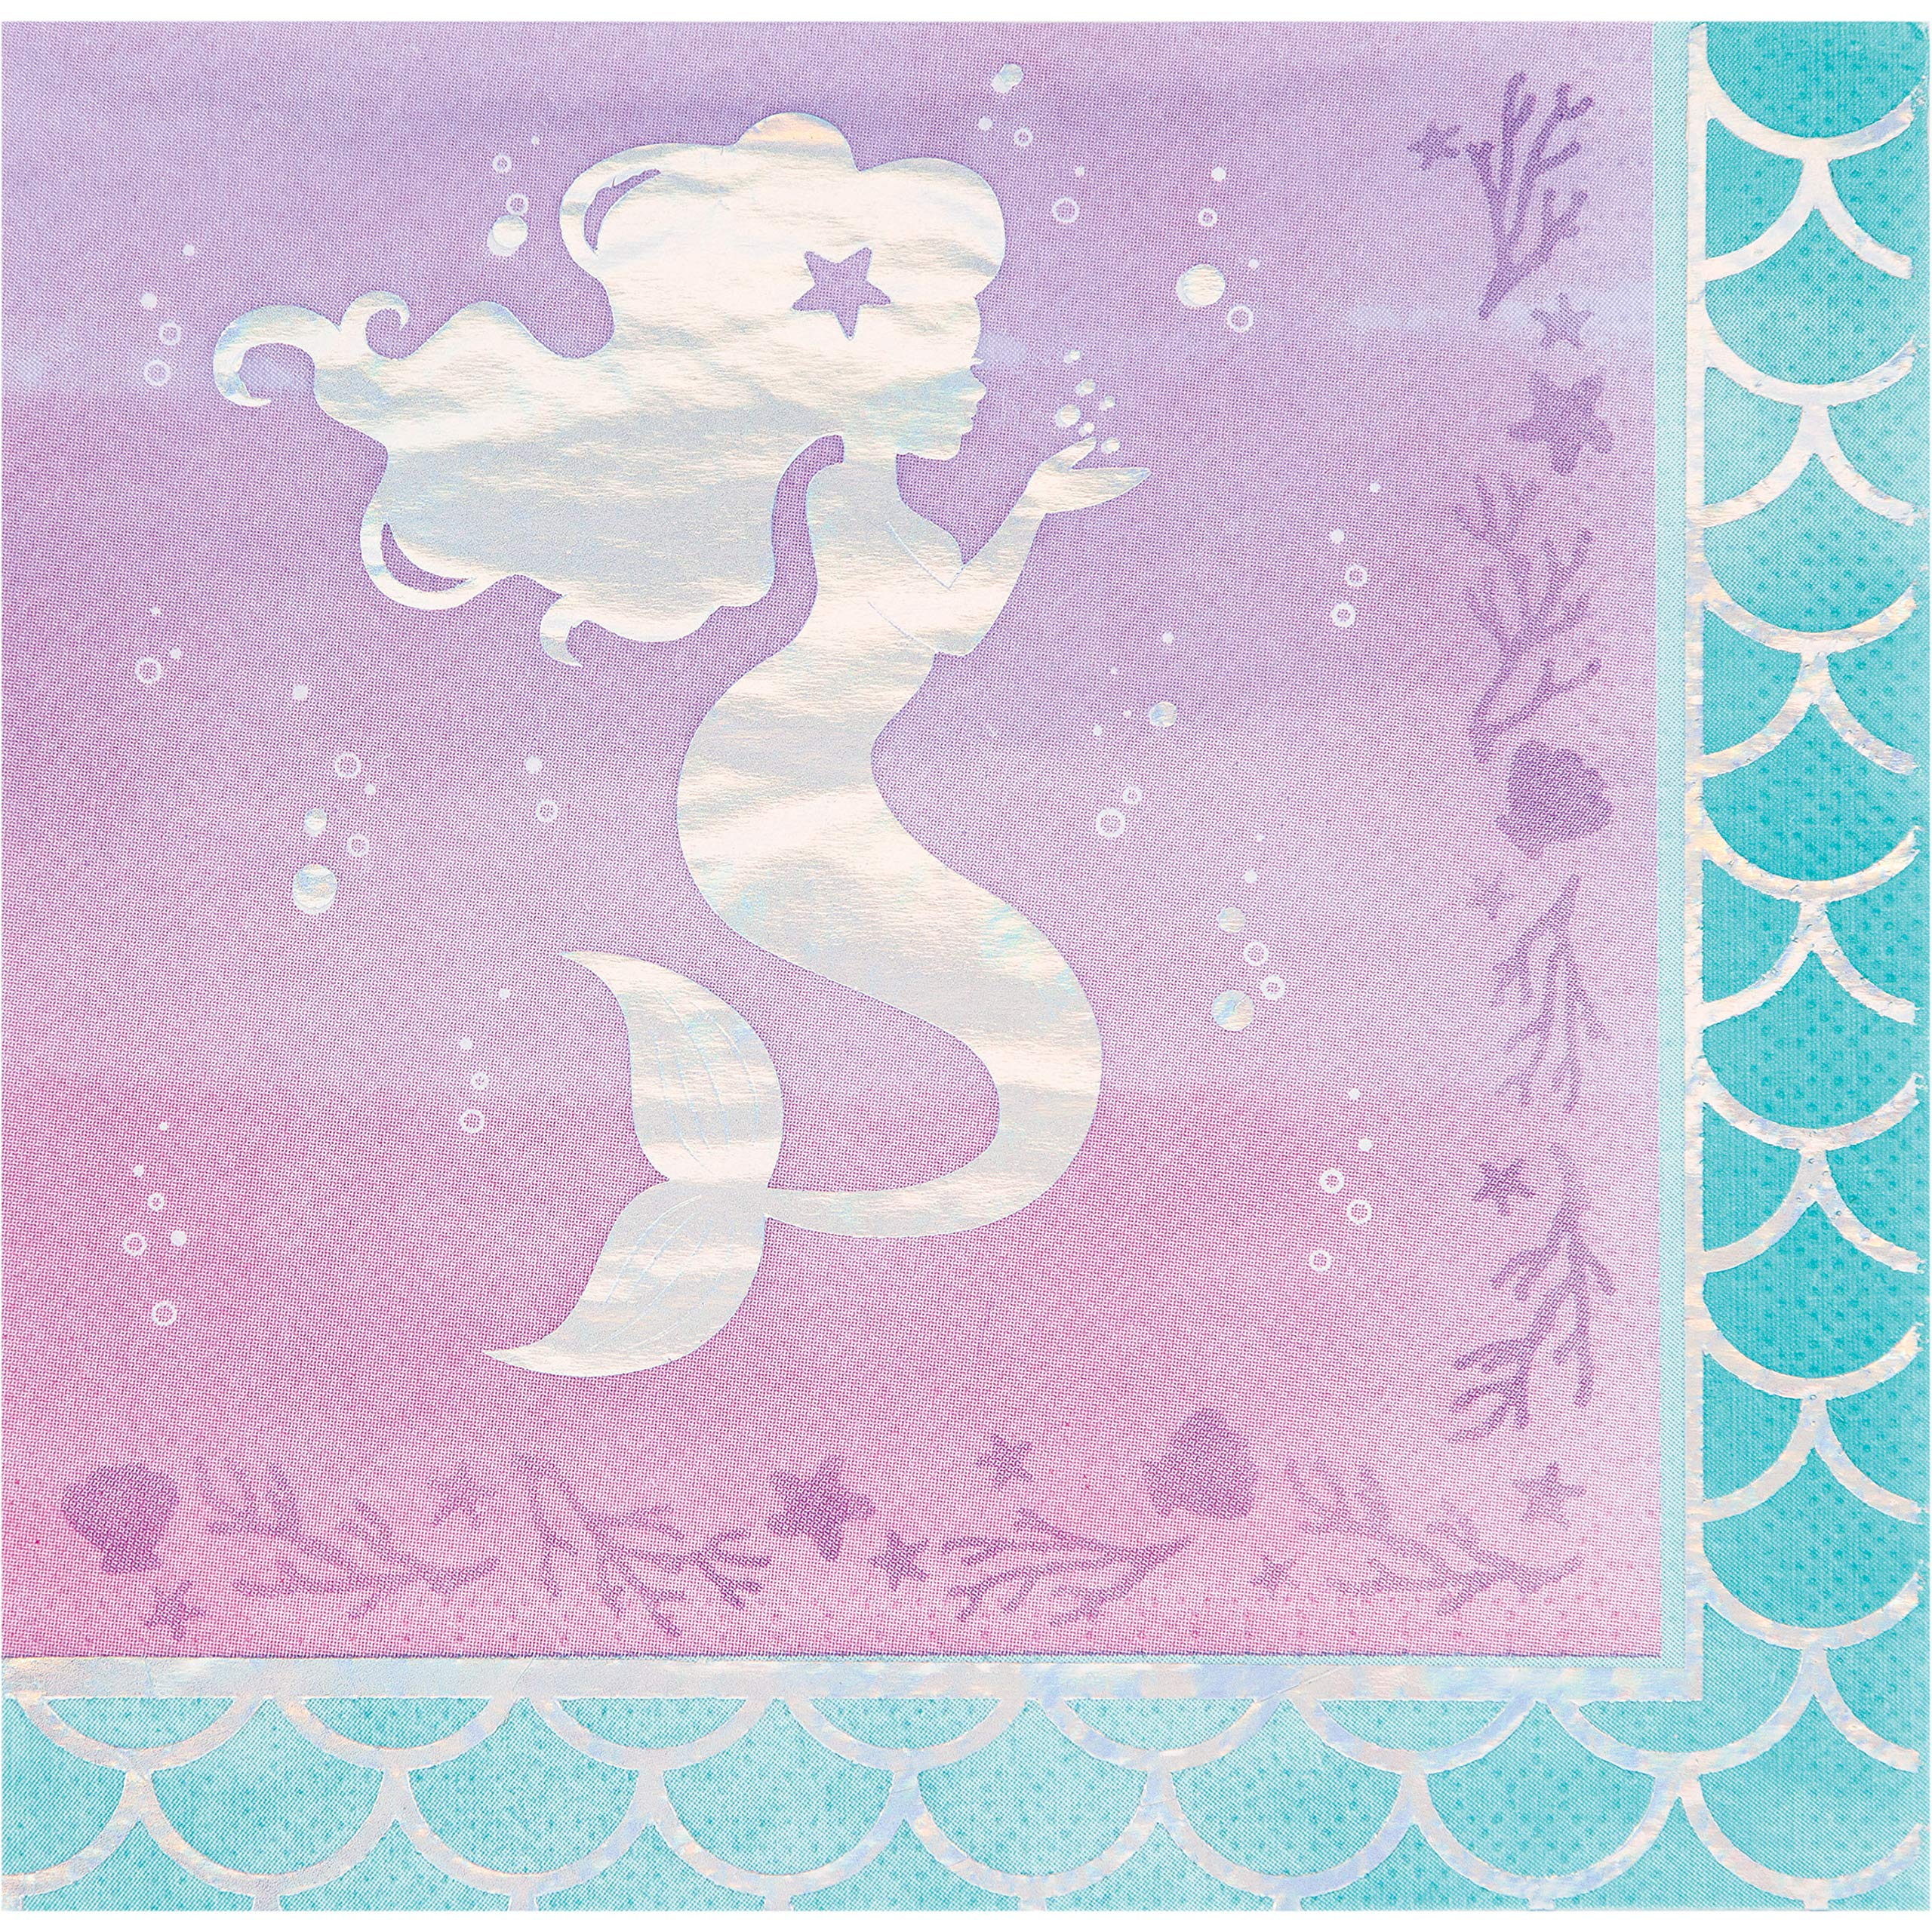 Iridescent Mermaid Party Napkins, 48 ct by Creative Converting